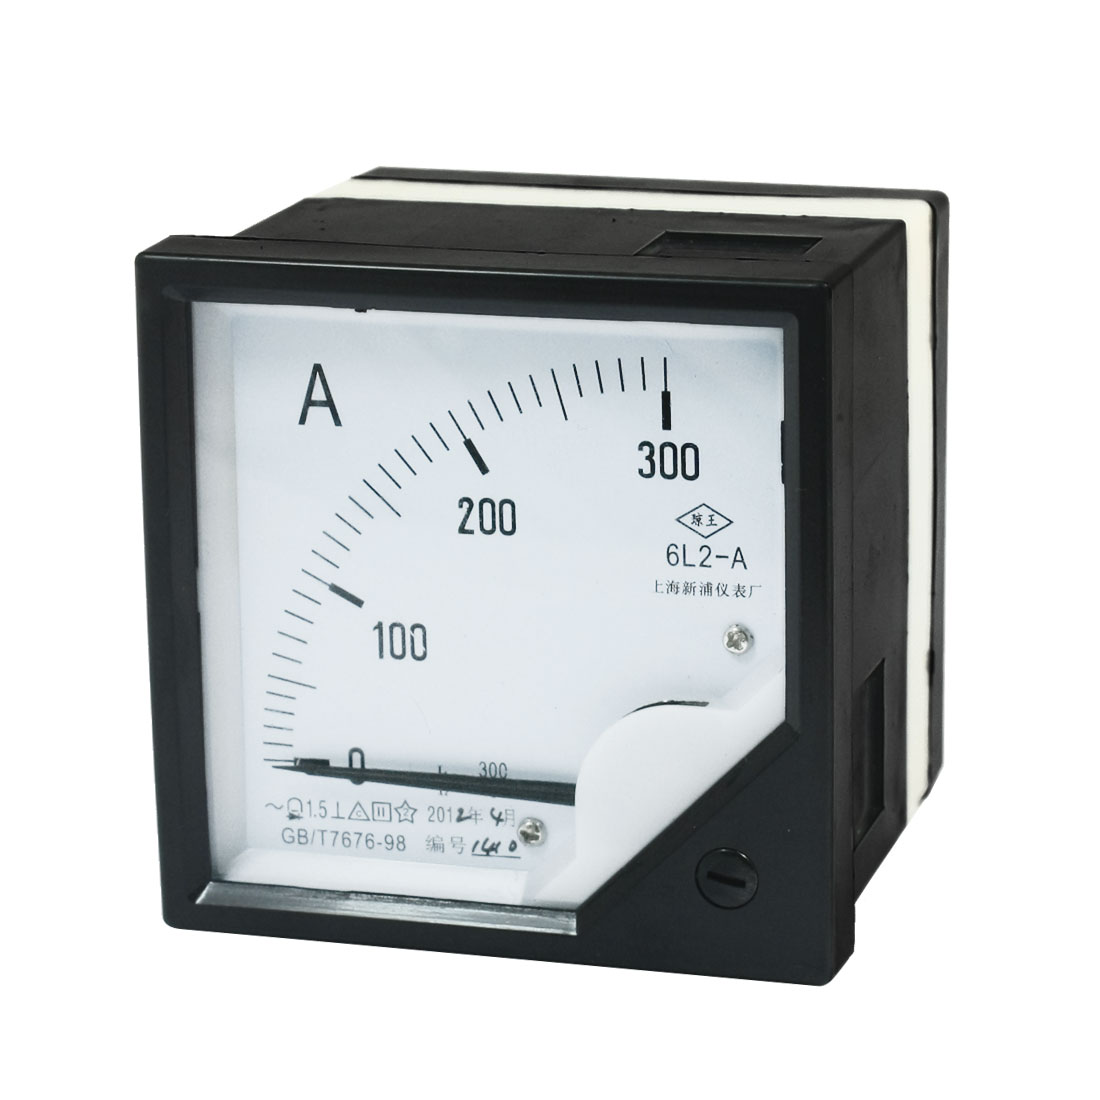 6L2-A AC 0 -300A Class 1.5 Accuracy Vertical Mounted Analog Ammeter Ampere Meter